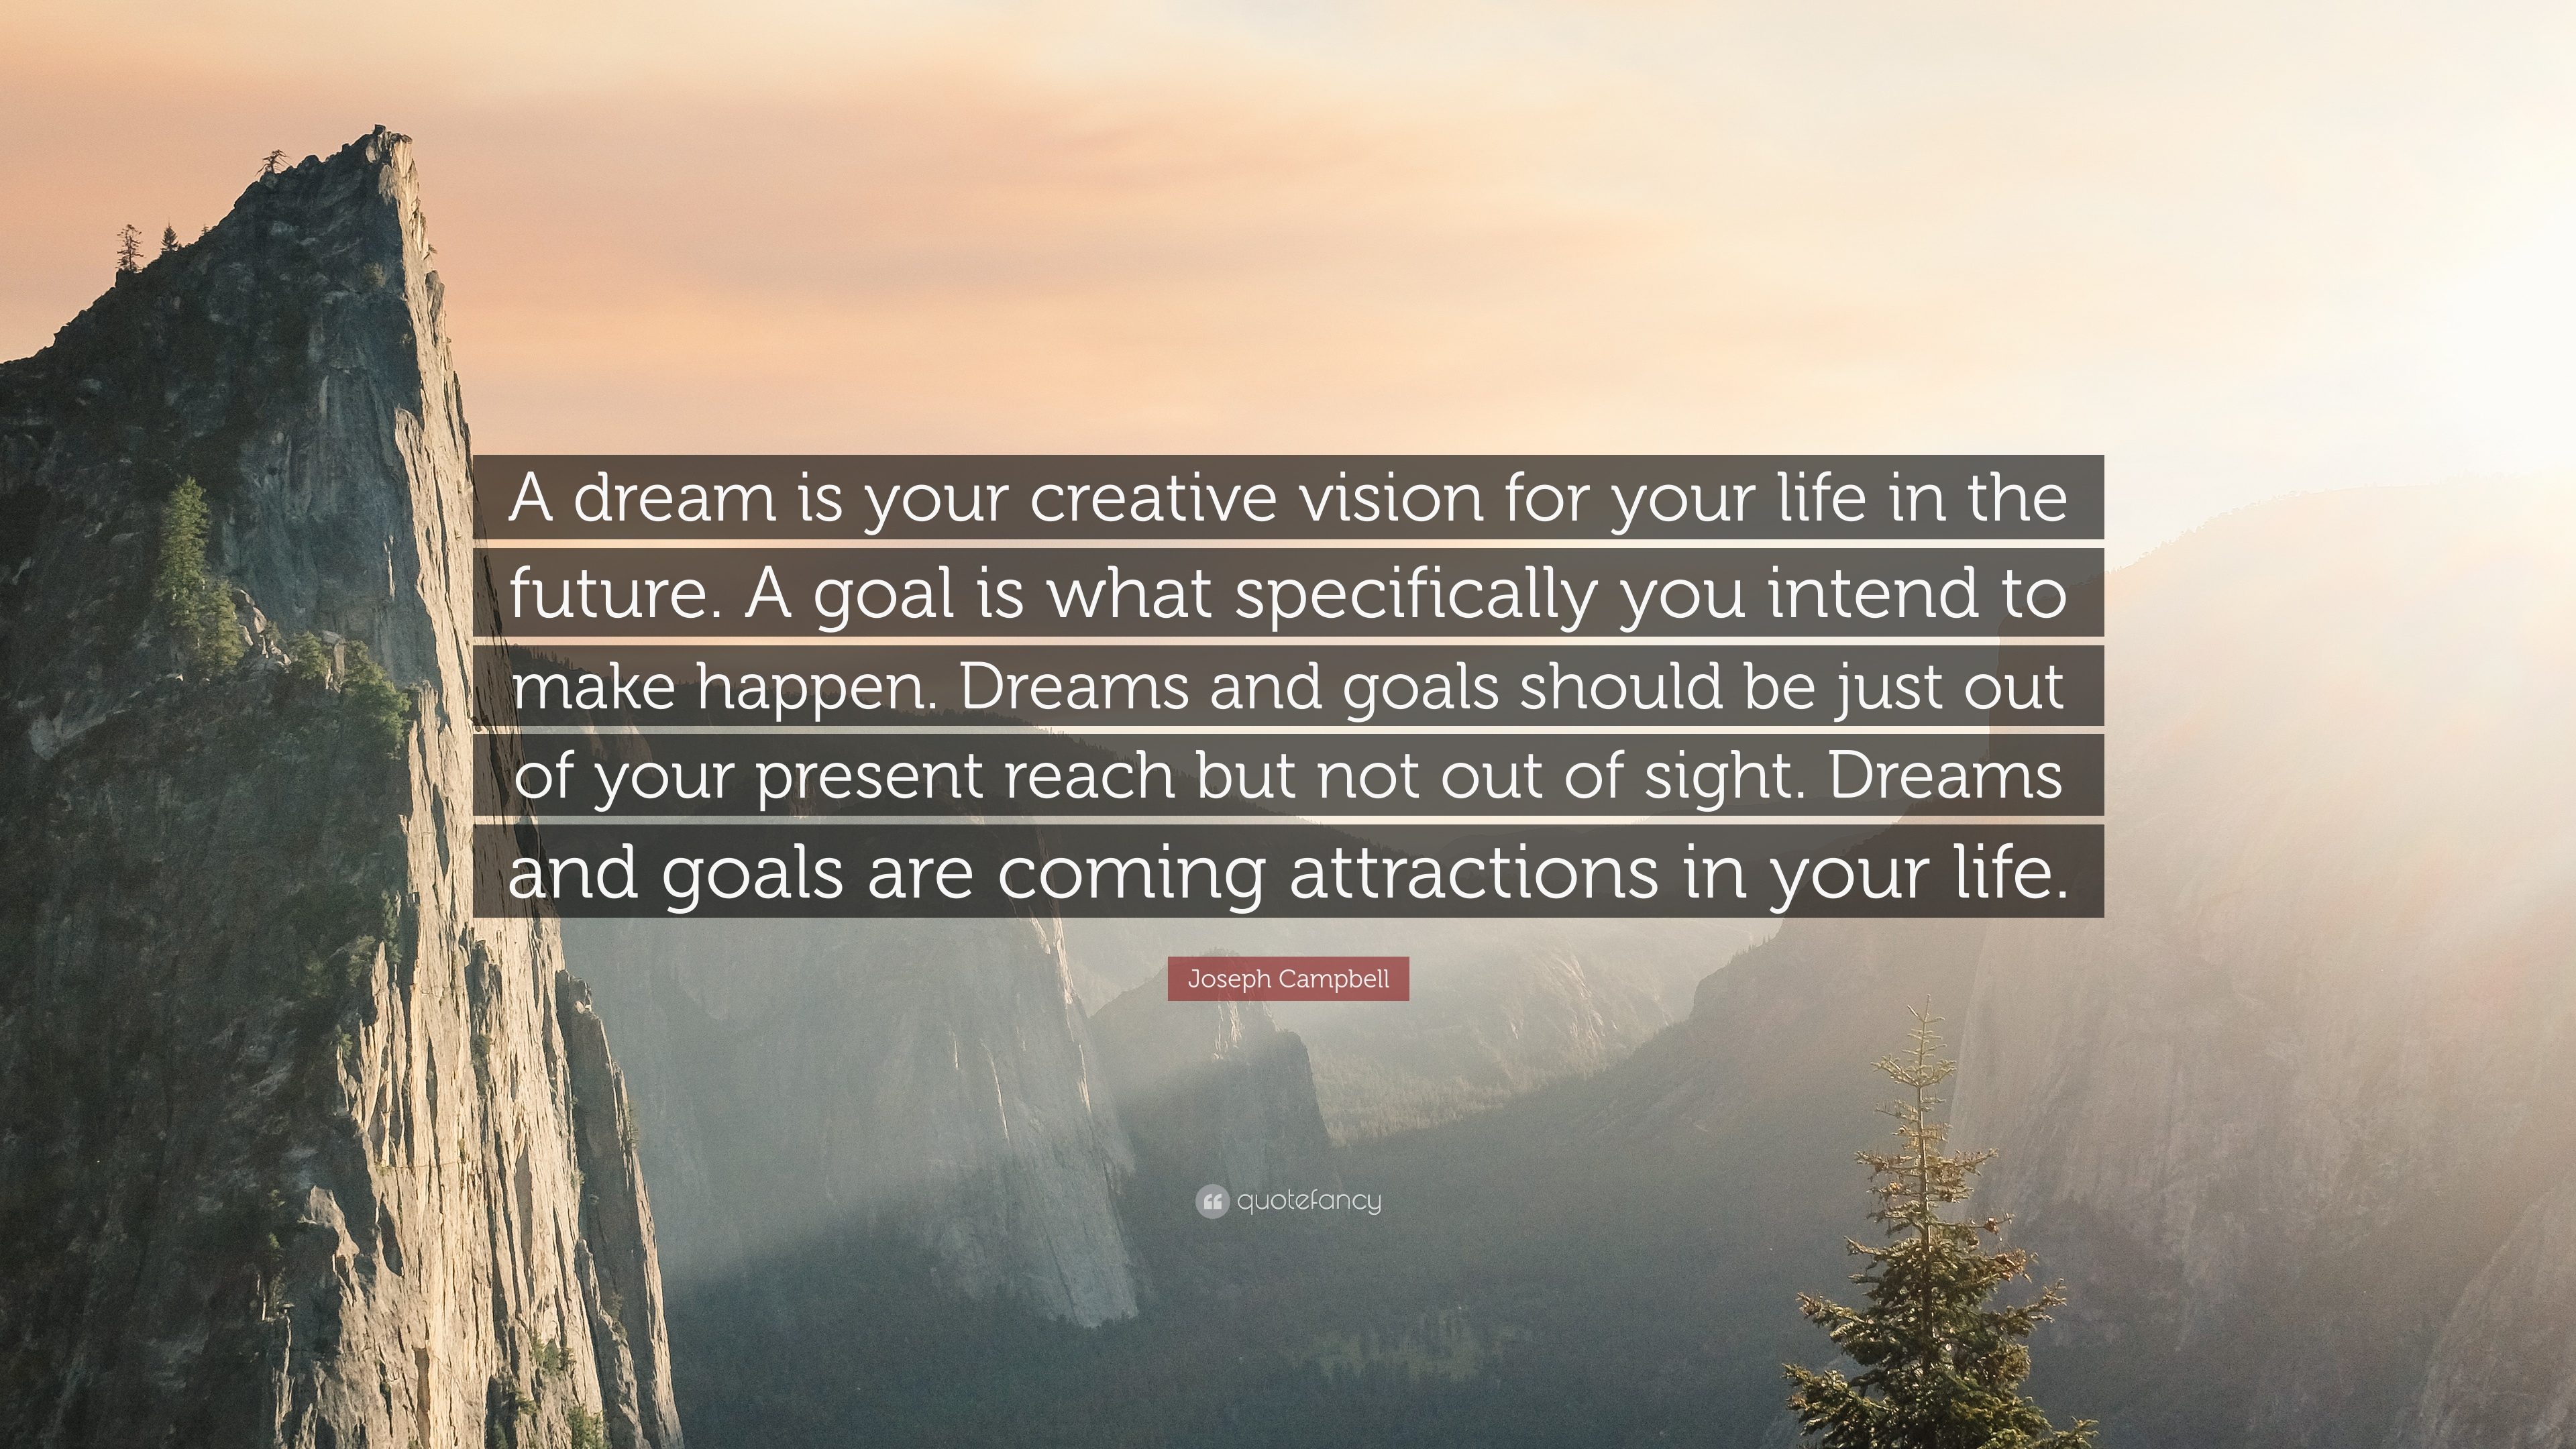 Socrates Wallpaper Quotes Joseph Campbell Quote A Dream Is Your Creative Vision